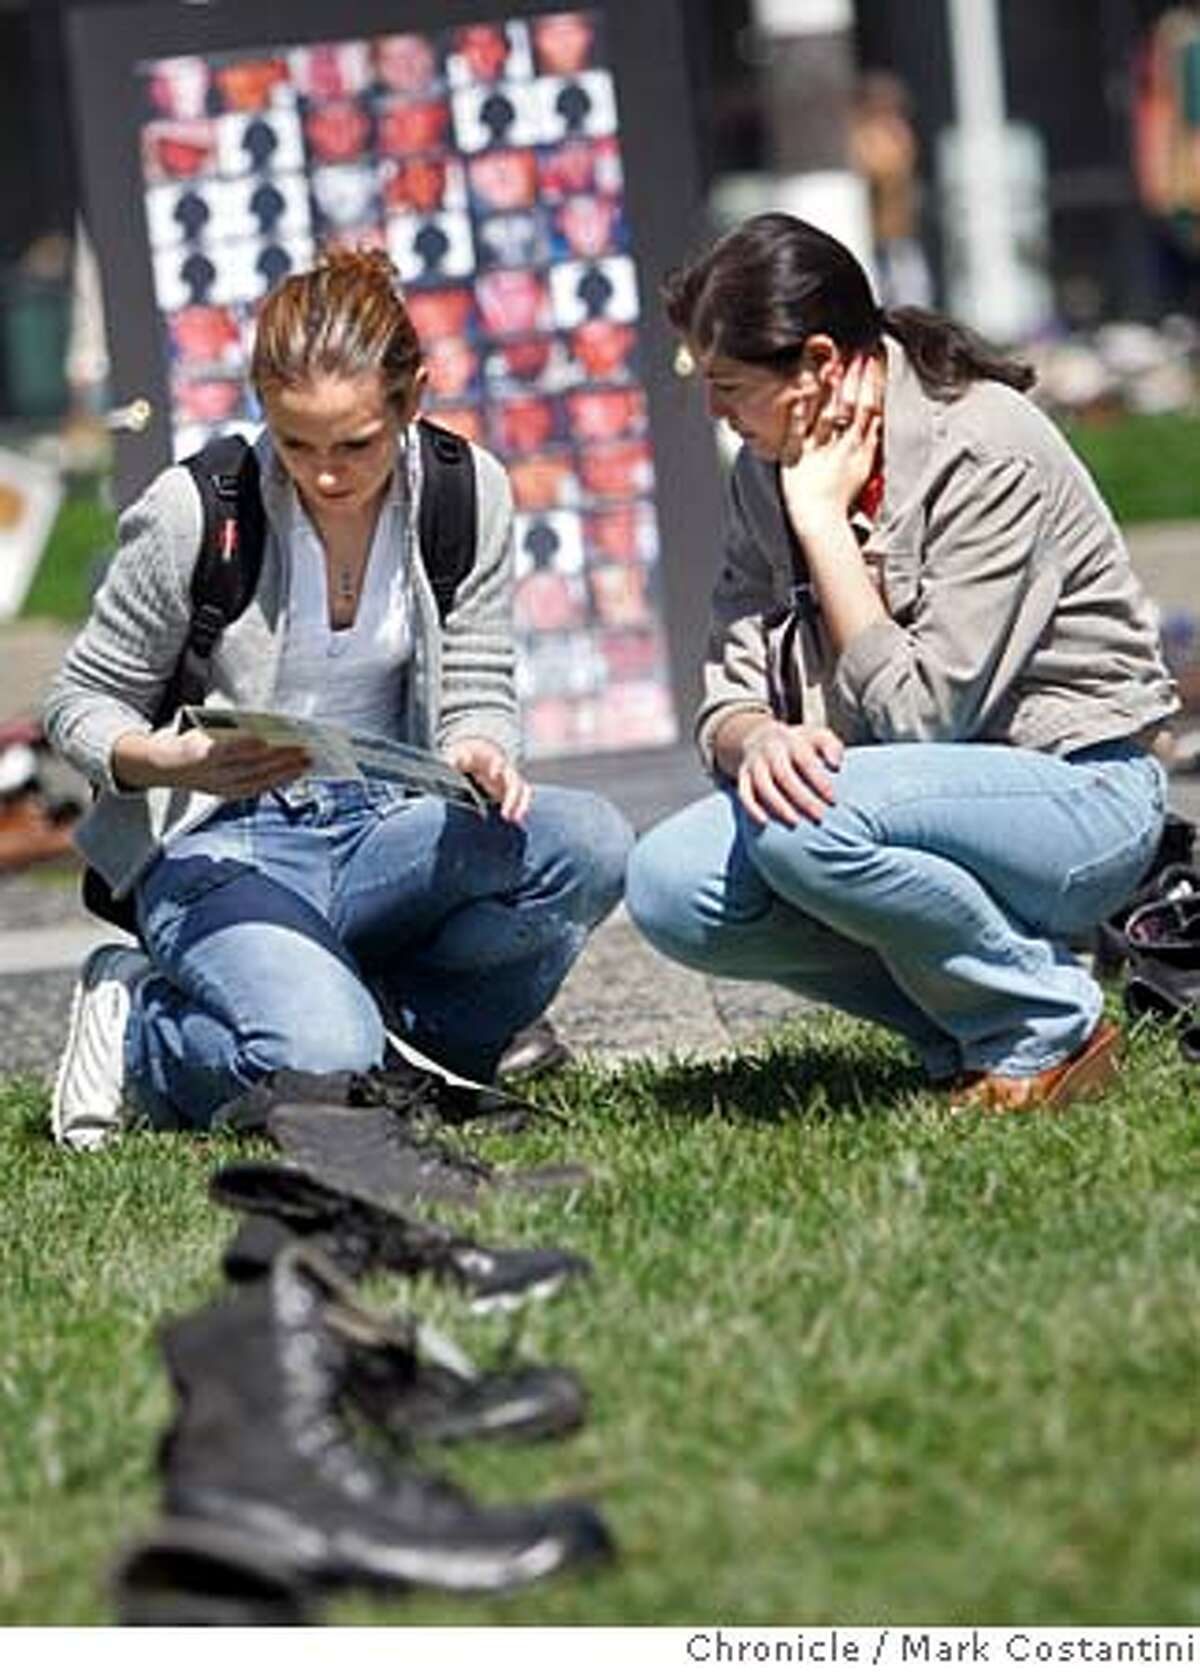 Mercy High School students(l-r) Monica Malton, 17 and Claudia Rivera, 18 view th e memorial. They are both from S.F. The Eyes Wide Open war casualties memorial featuring over 1,500 pairs of empty combat boots � tagged with the names of U.S. soldiers who died in the Iraq war � together with a field of shoes and wall of names to memorialize the Iraqis killed will be coming to San Francisco�s Civic Center on March 25th and 26th and in Union Square on the 27th. Mark Costantini /San Francisco Chronicle